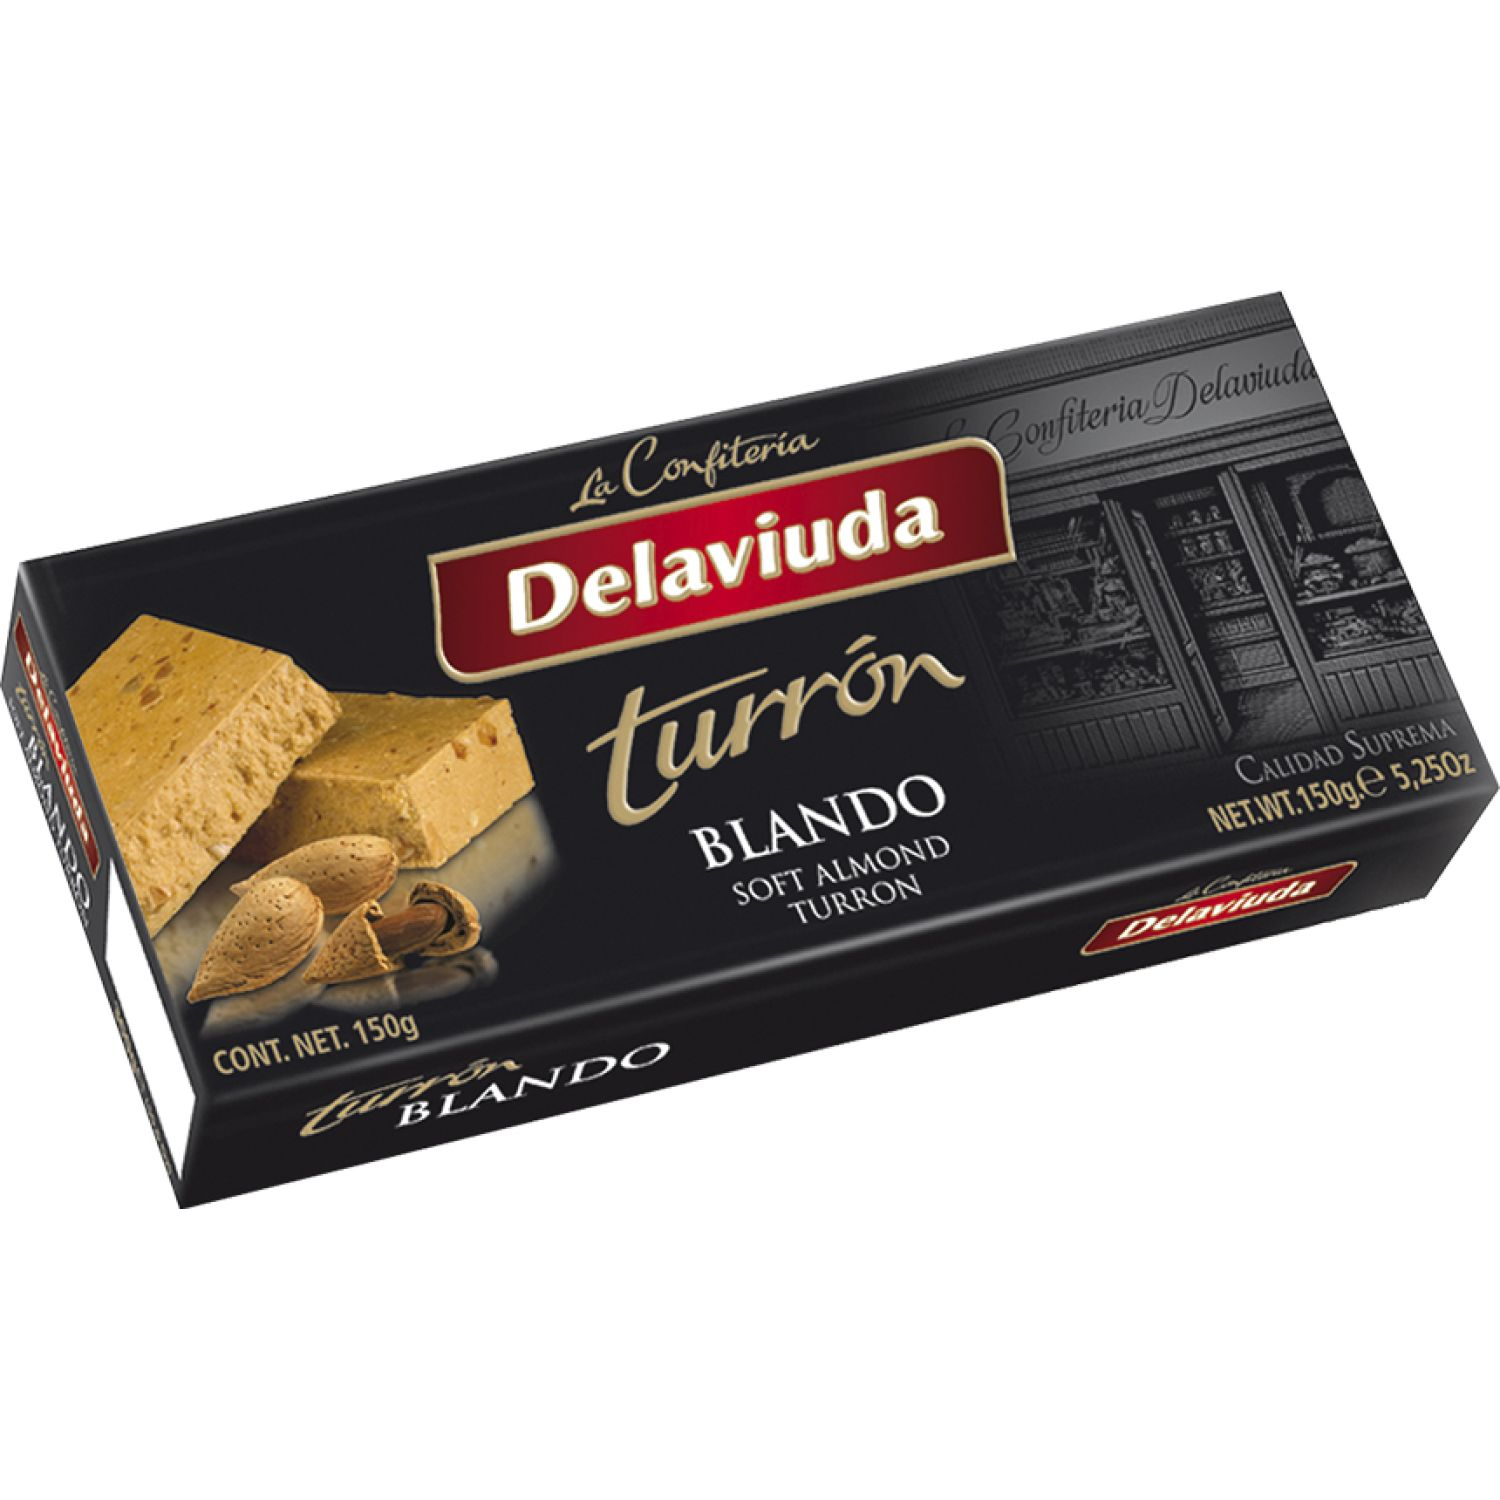 Delaviuda Turron Blando 150 Gr Sin color Traditional y international sweets